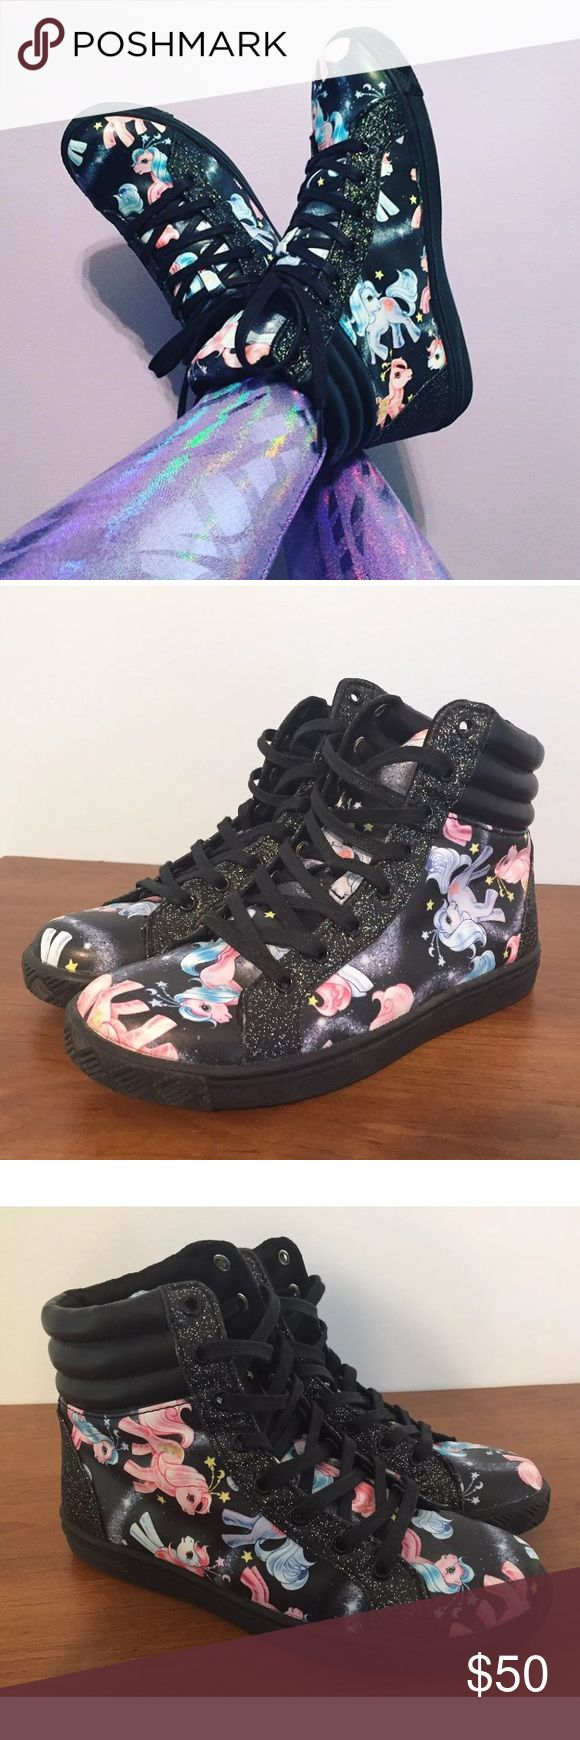 Iron Fist My Little Pony High Top Sneakers These shoes are really cute and sparkly!  They are in very good used condition, worn just a few times. Iron Fist Shoes Sneakers